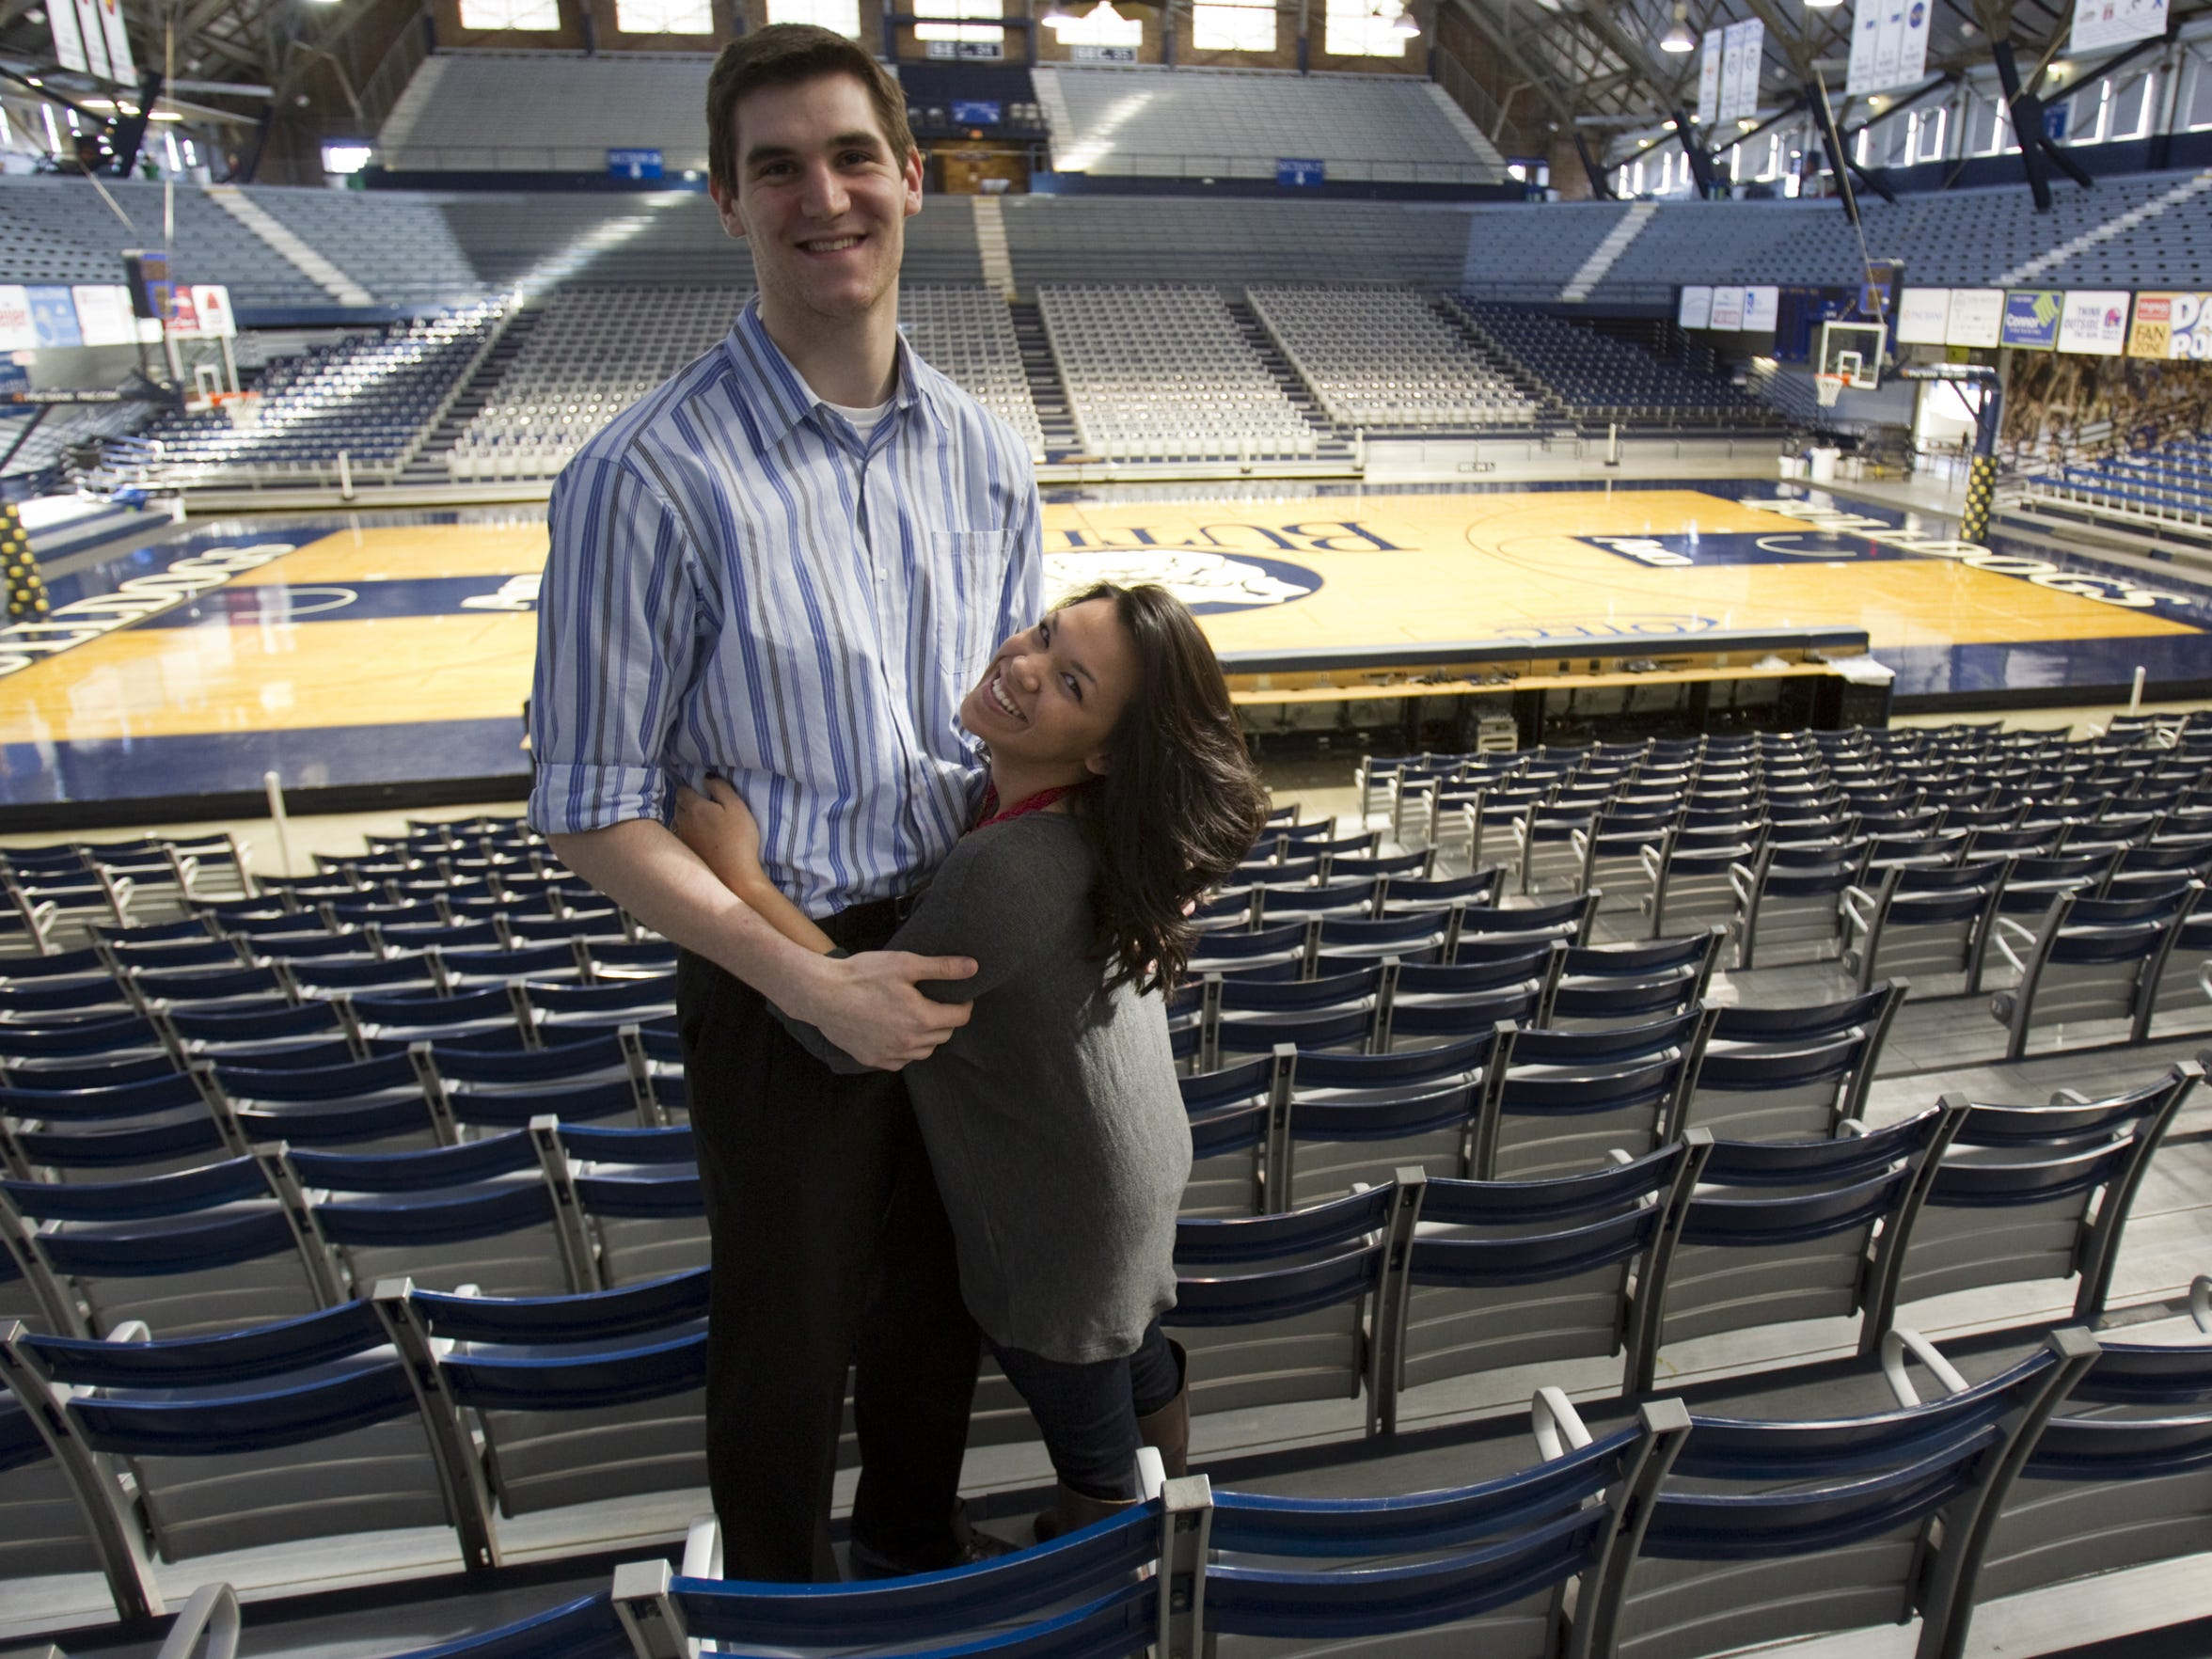 Andrew Smith, Butler center, and Samantha Stage in Hinkle Fieldhouse, Feb. 19, 2013.